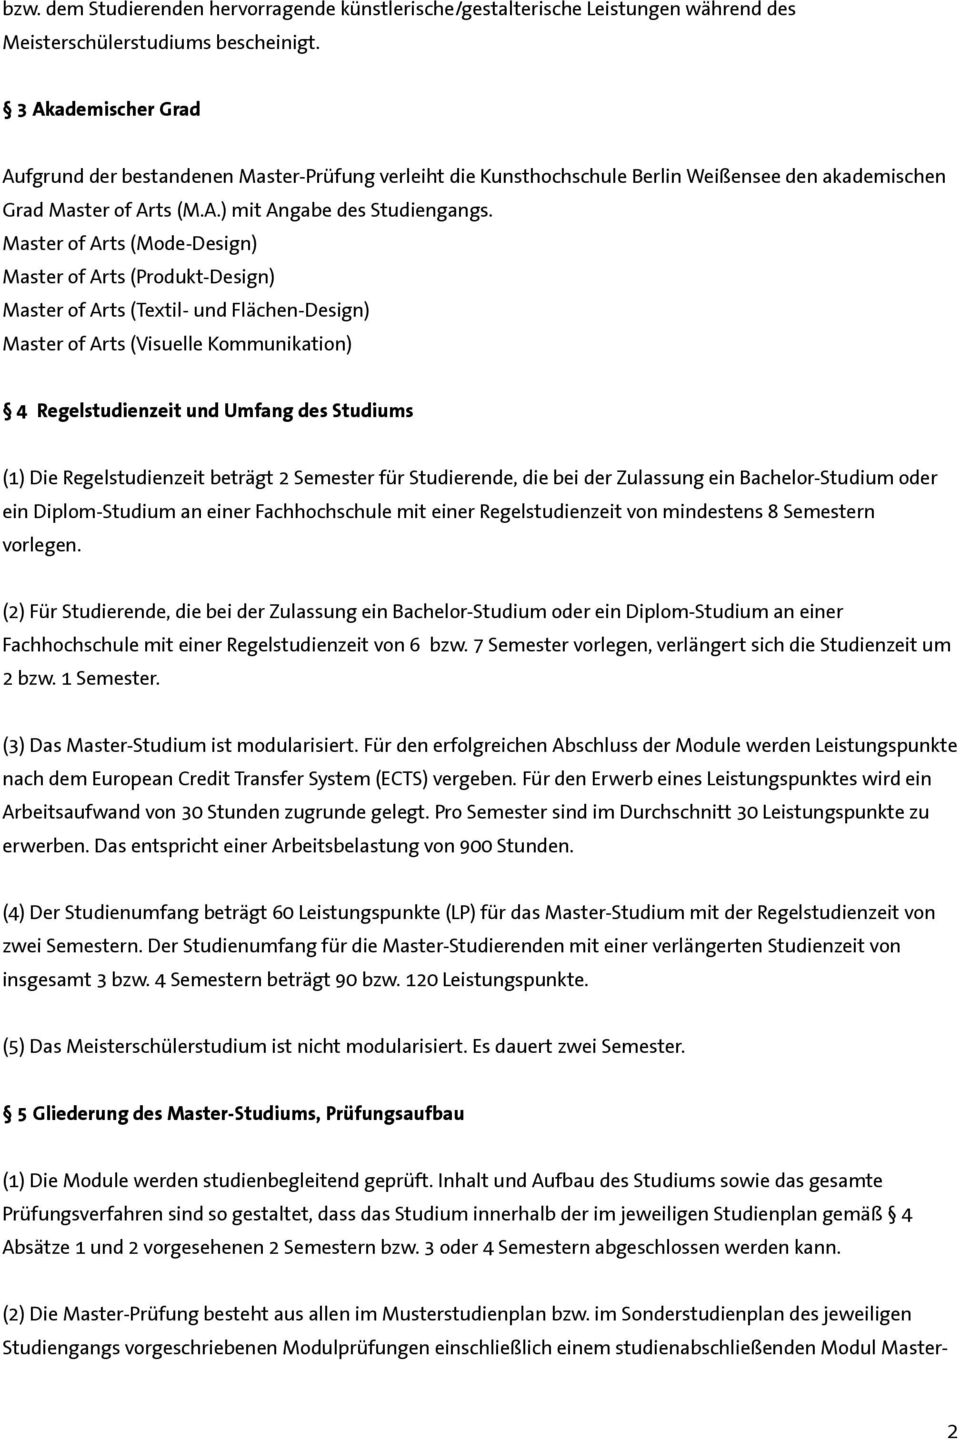 Master of Arts (Mode-Design) Master of Arts (Produkt-Design) Master of Arts (Textil- und Flächen-Design) Master of Arts (Visuelle Kommunikation) 4 Regelstudienzeit und Umfang des Studiums (1) Die